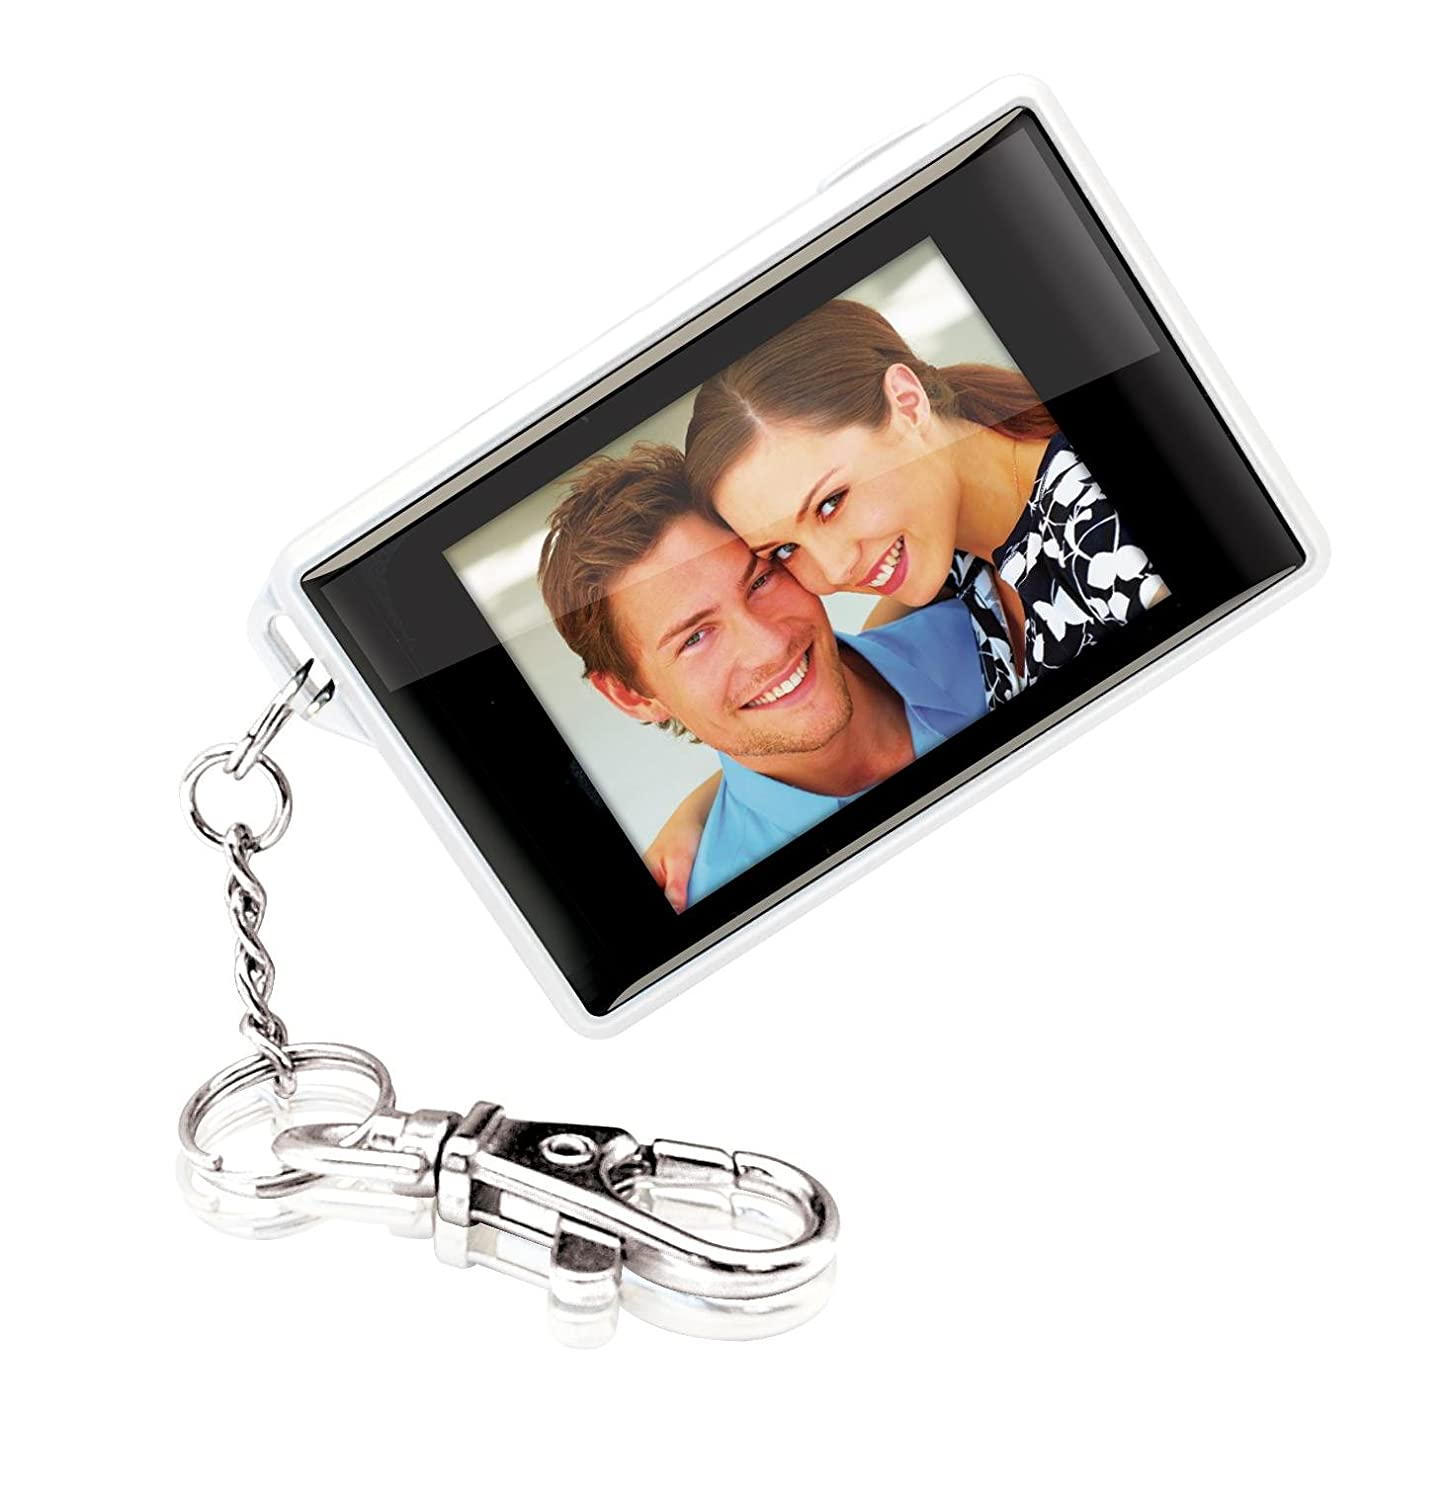 Amazon coby dp151wht 15 inch digital tft lcd photo keychain amazon coby dp151wht 15 inch digital tft lcd photo keychain white digital picture frames camera photo jeuxipadfo Choice Image